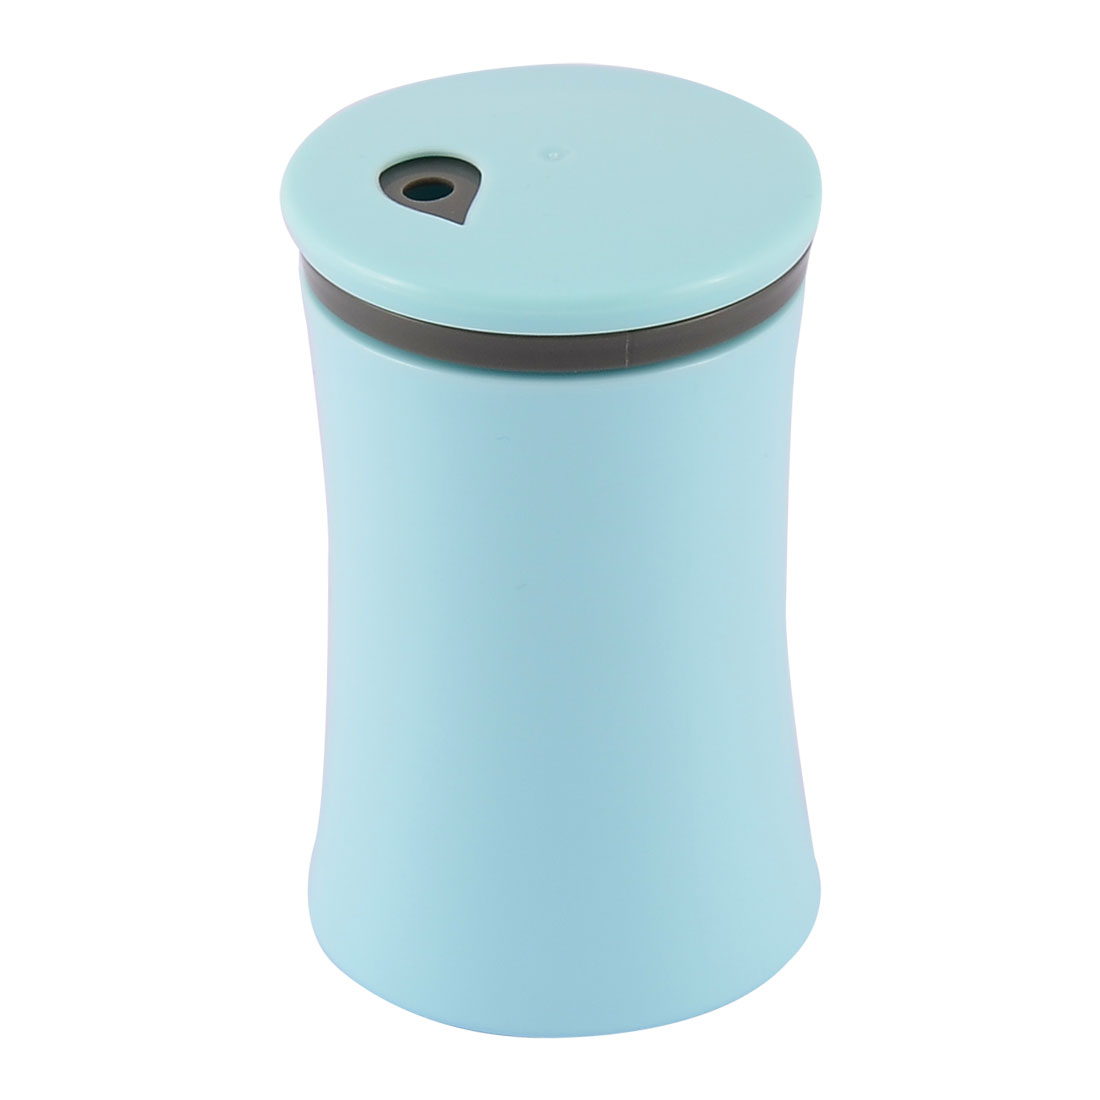 Restaurant Lunch Blue Plastic Toothpick Holder Case Box Container w Toothpicks